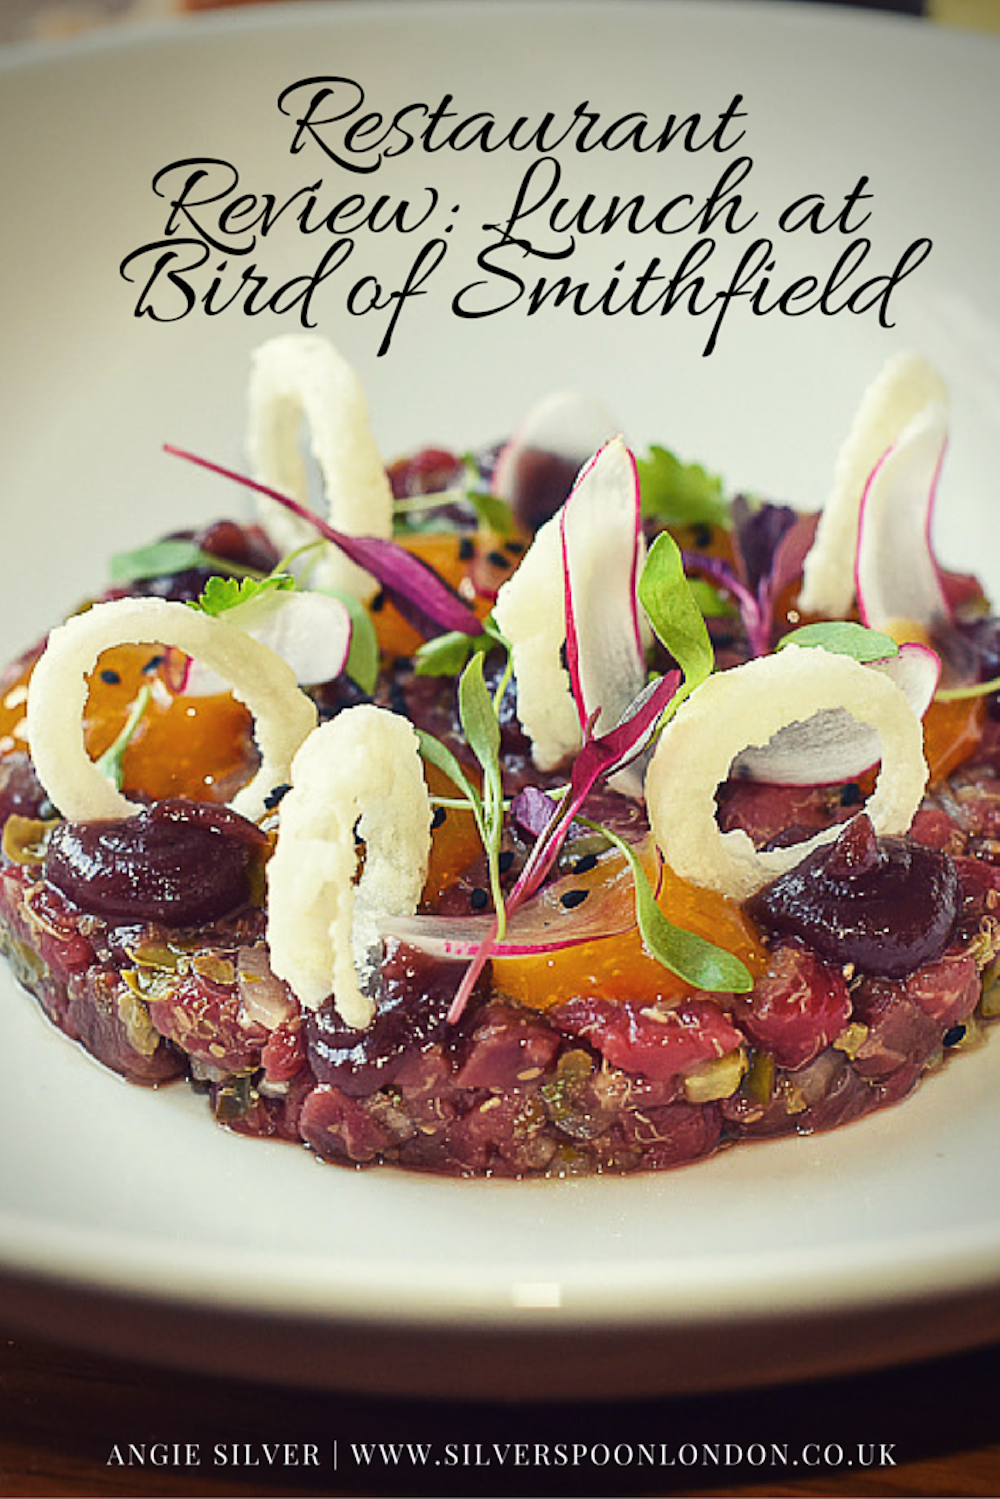 Restaurant Review: Bird of Smithfield